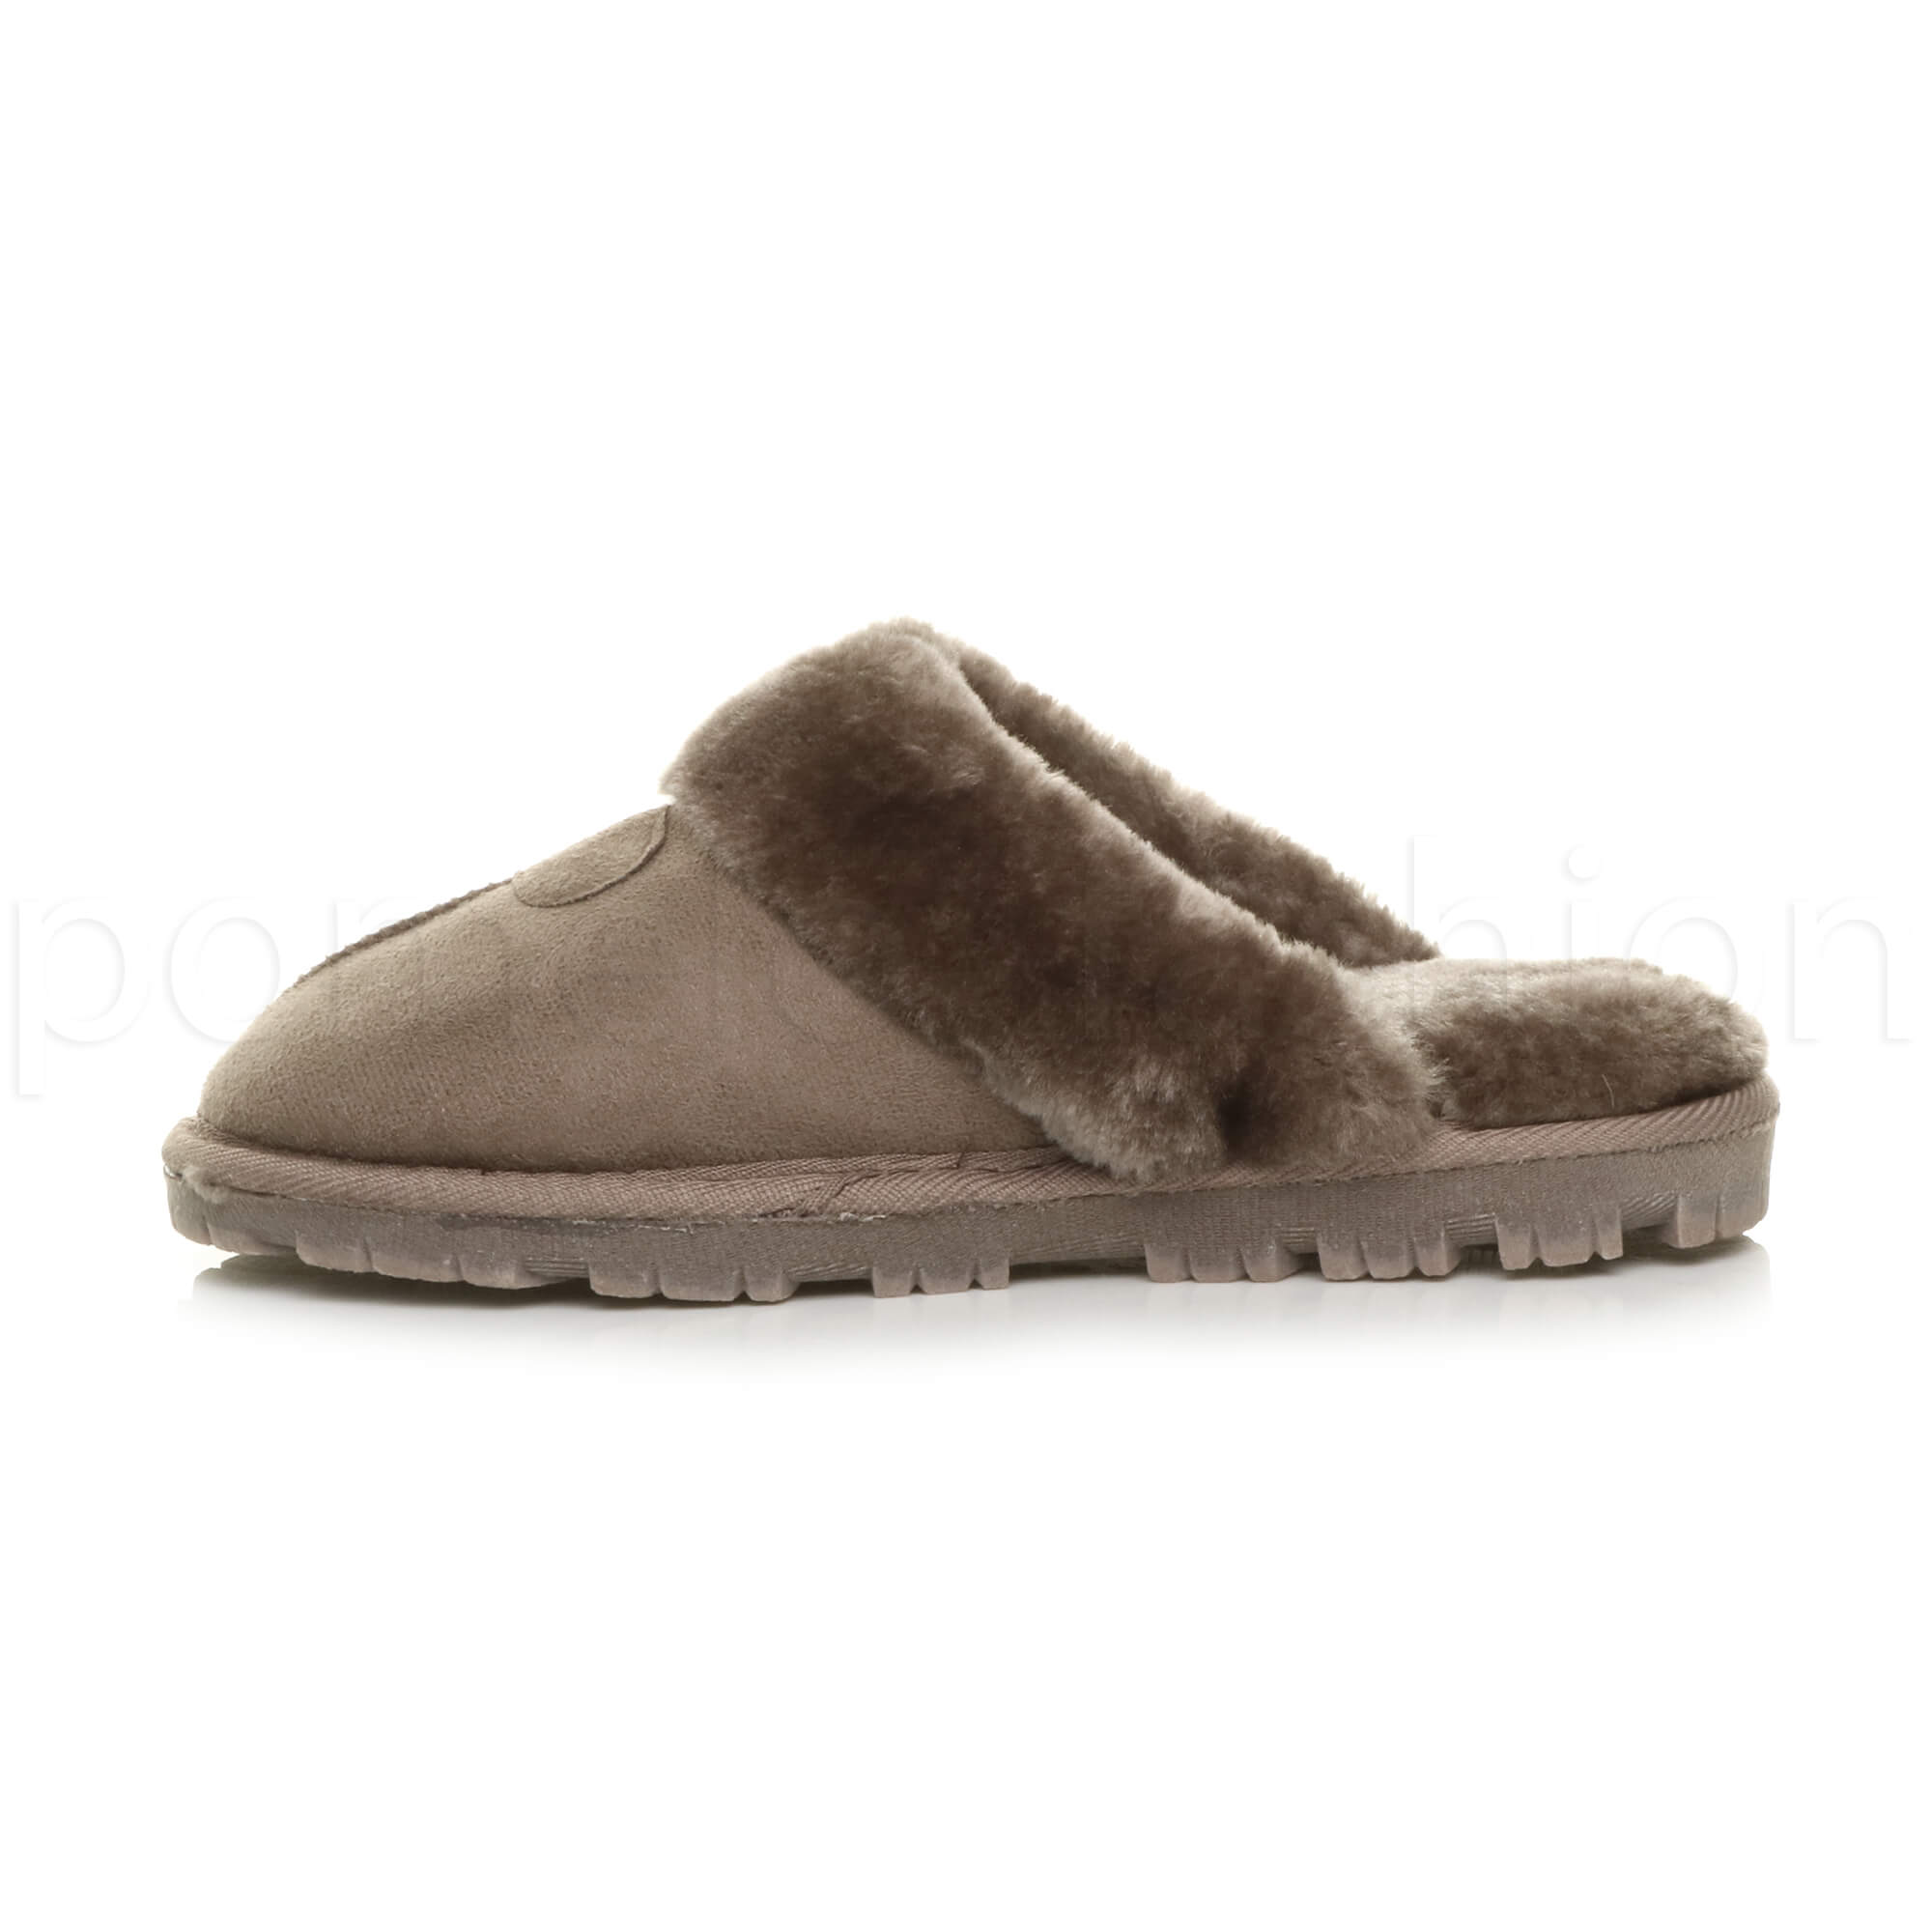 WOMENS-LADIES-FLAT-FUR-LINED-COMFORTABLE-WINTER-MULES-SLIPPERS-HOUSE-SHOES-SIZE thumbnail 53